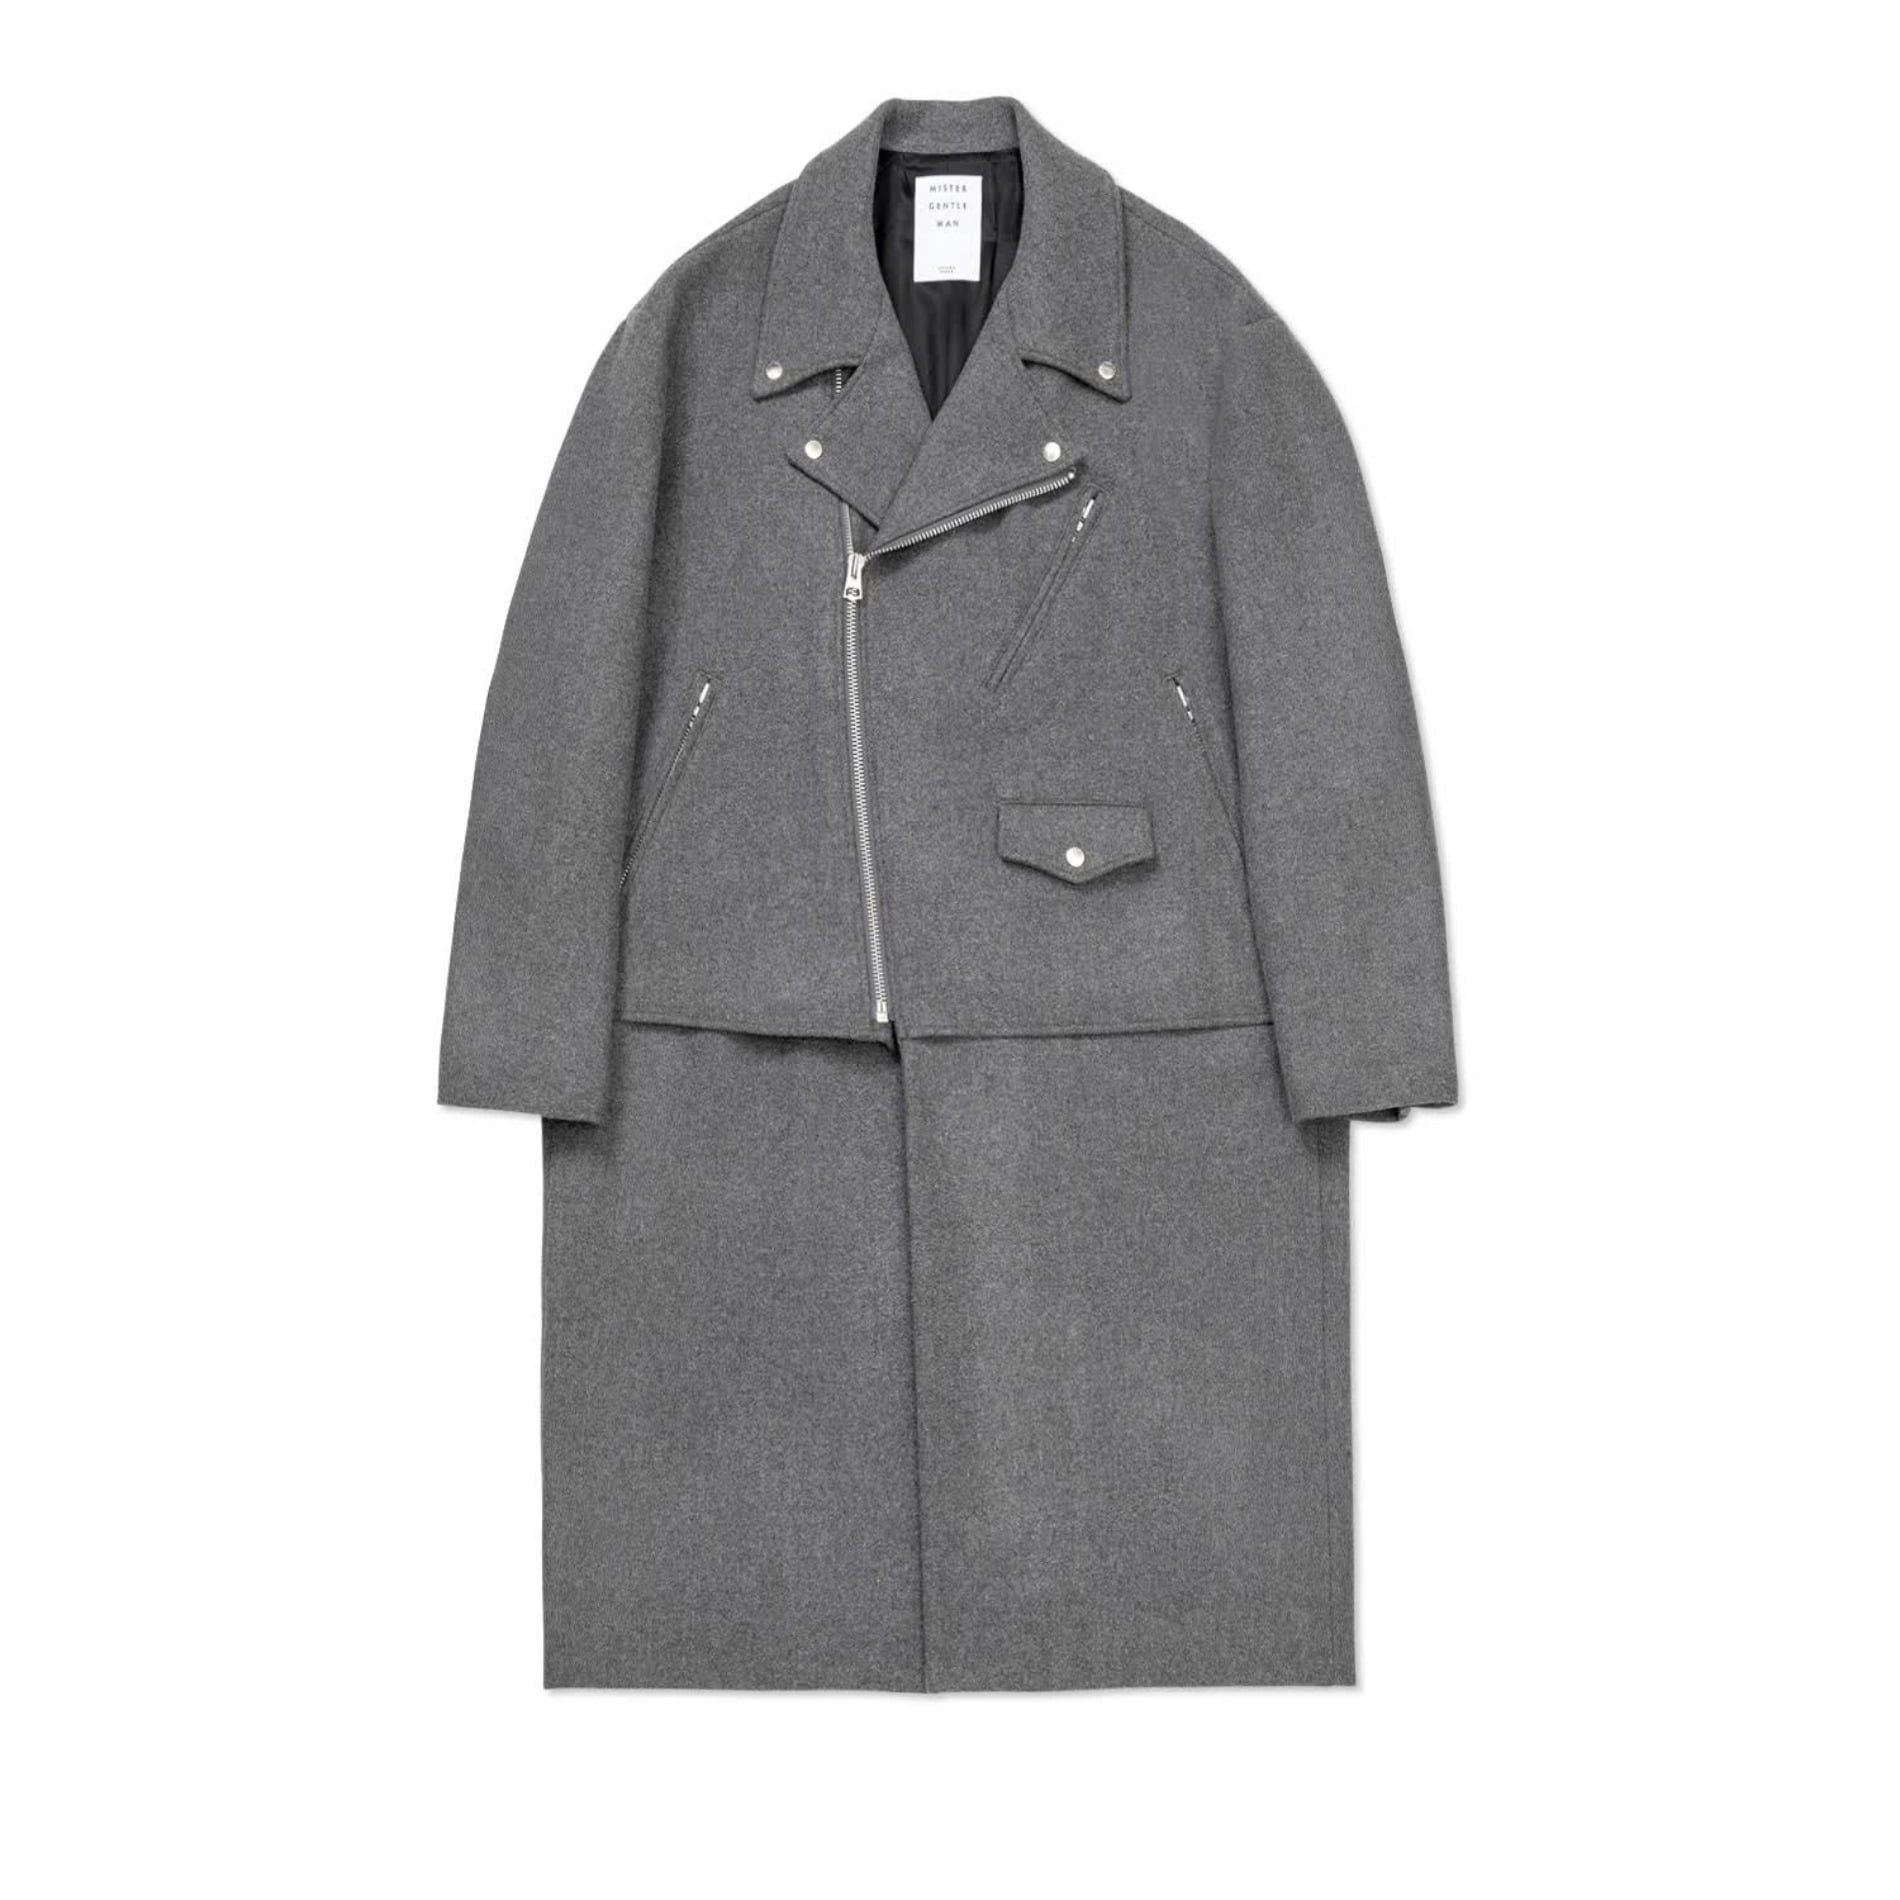 AW20 MISTER GENTLEMAN RIDERS FRONT COAT GREY